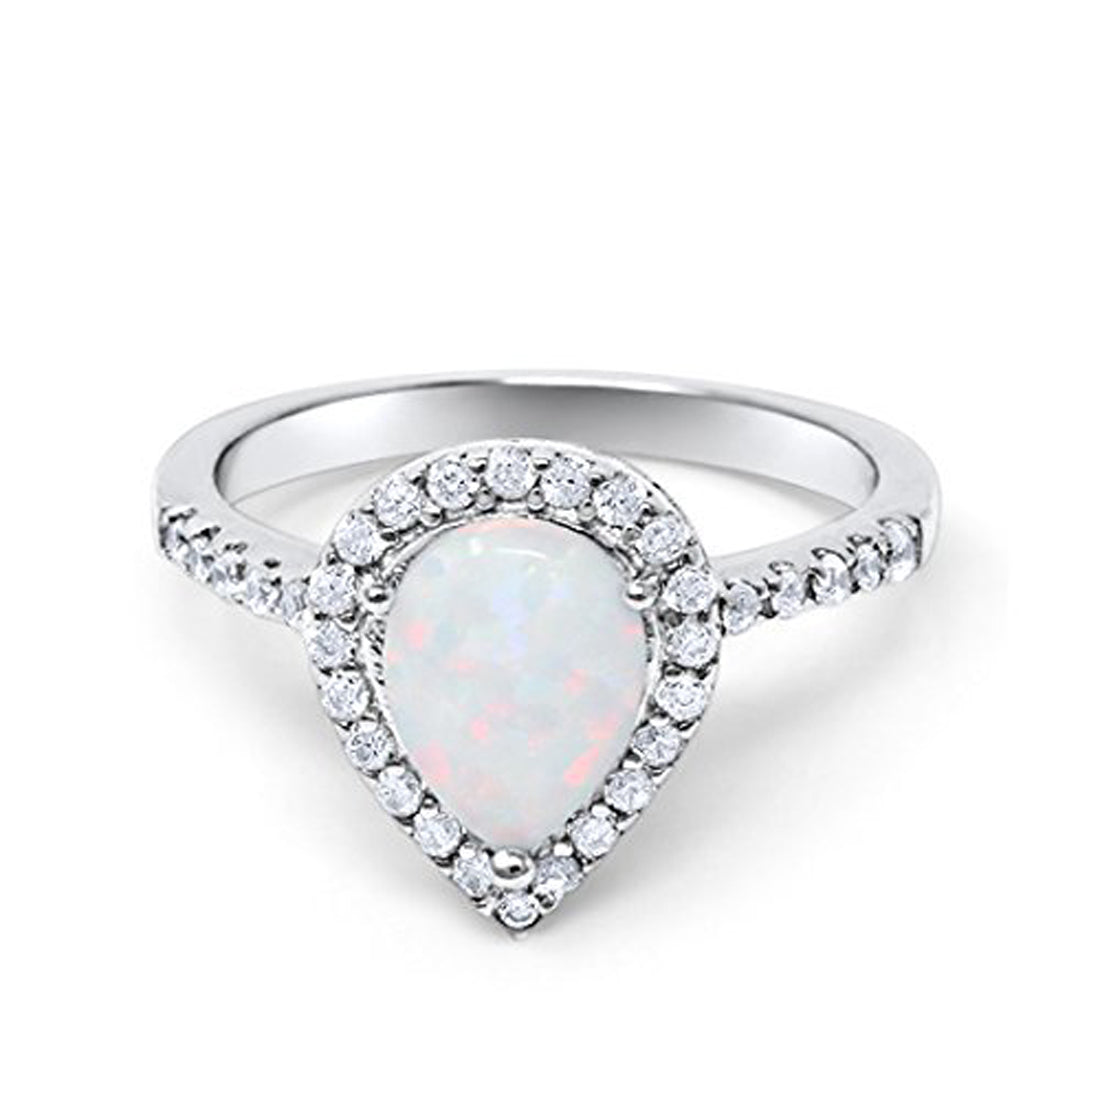 Halo Teardrop Bridal Filigree Ring Lab White Opal 925 Sterling Silver